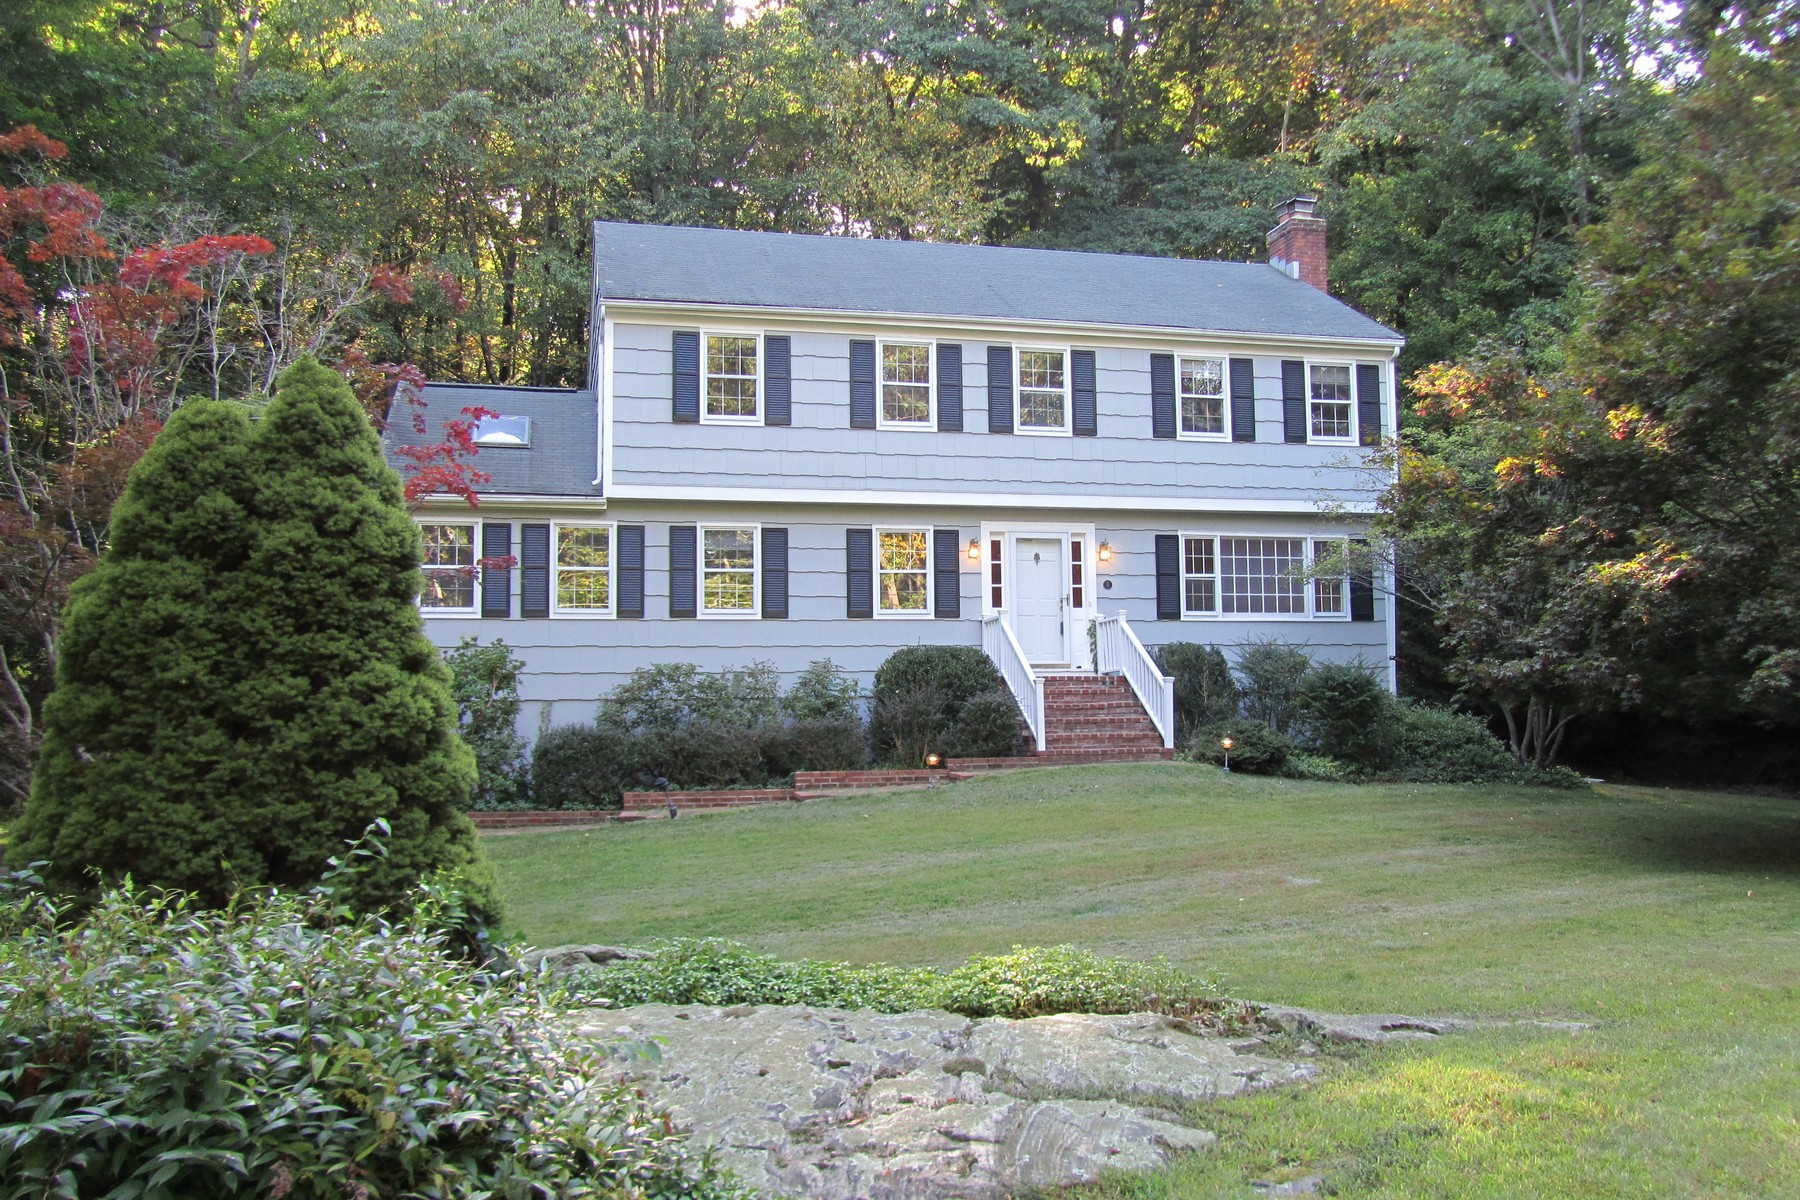 rentals property at Spacious 4 Bedroom Colonial Rental